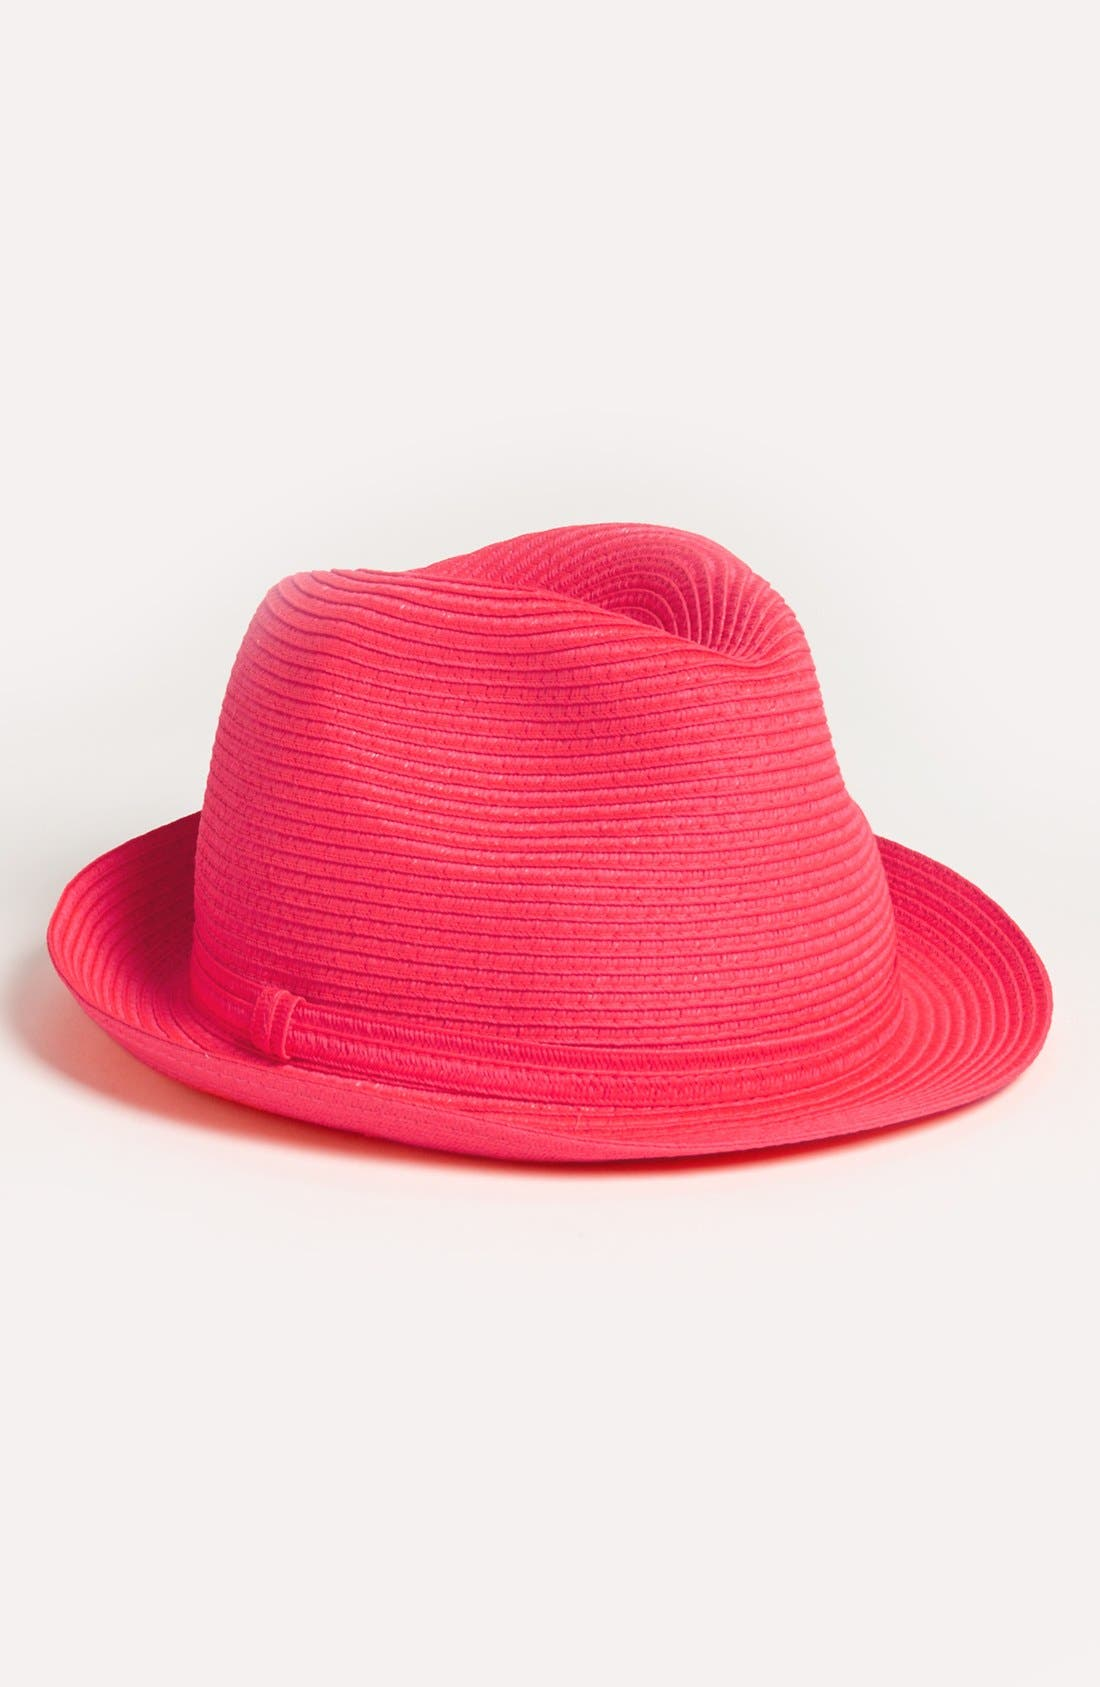 Alternate Image 1 Selected - Collection XIIX Woven Fedora